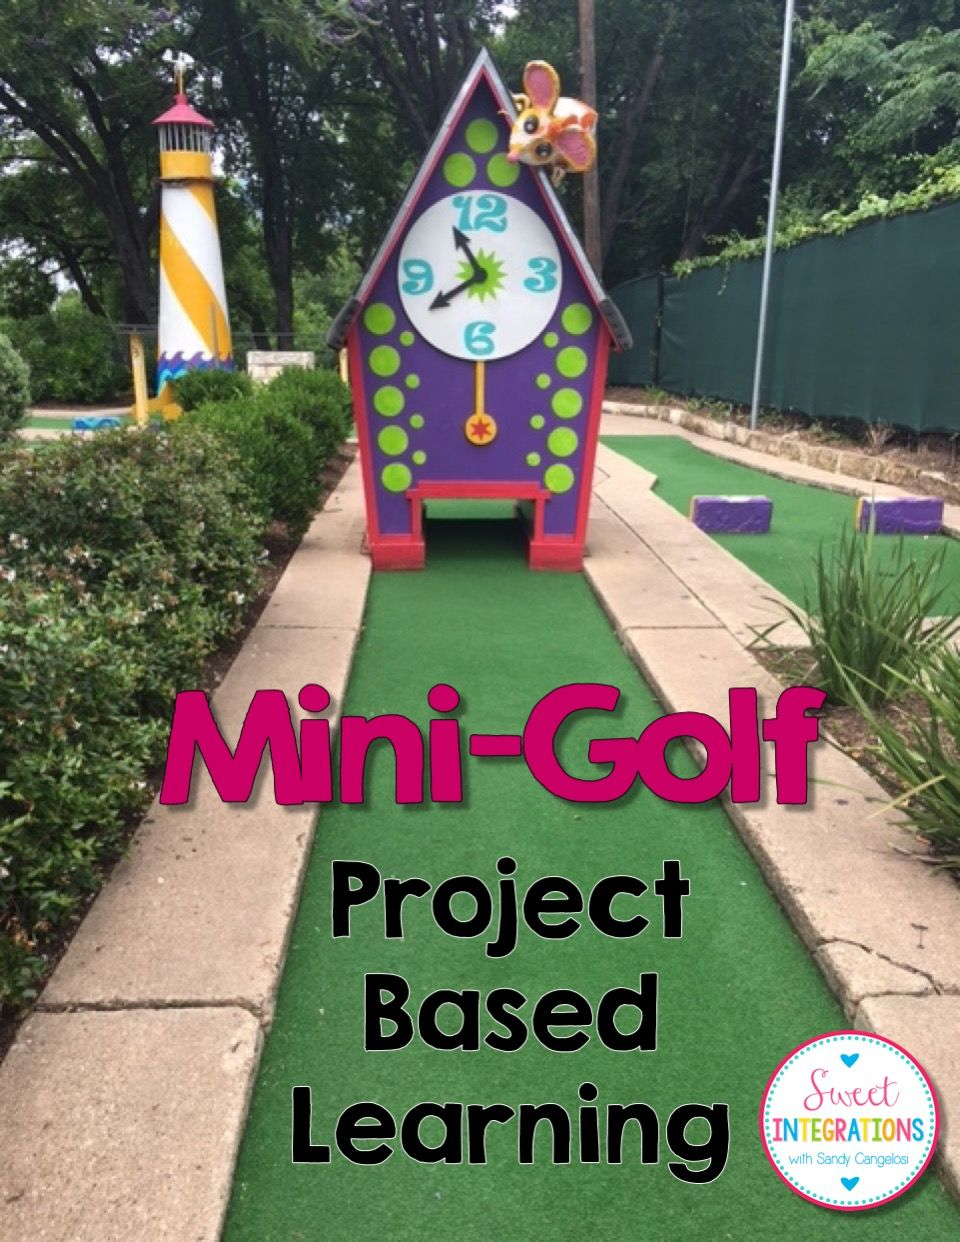 Classroom Design Project Based Learning : Project based learning math and stem design a mini golf